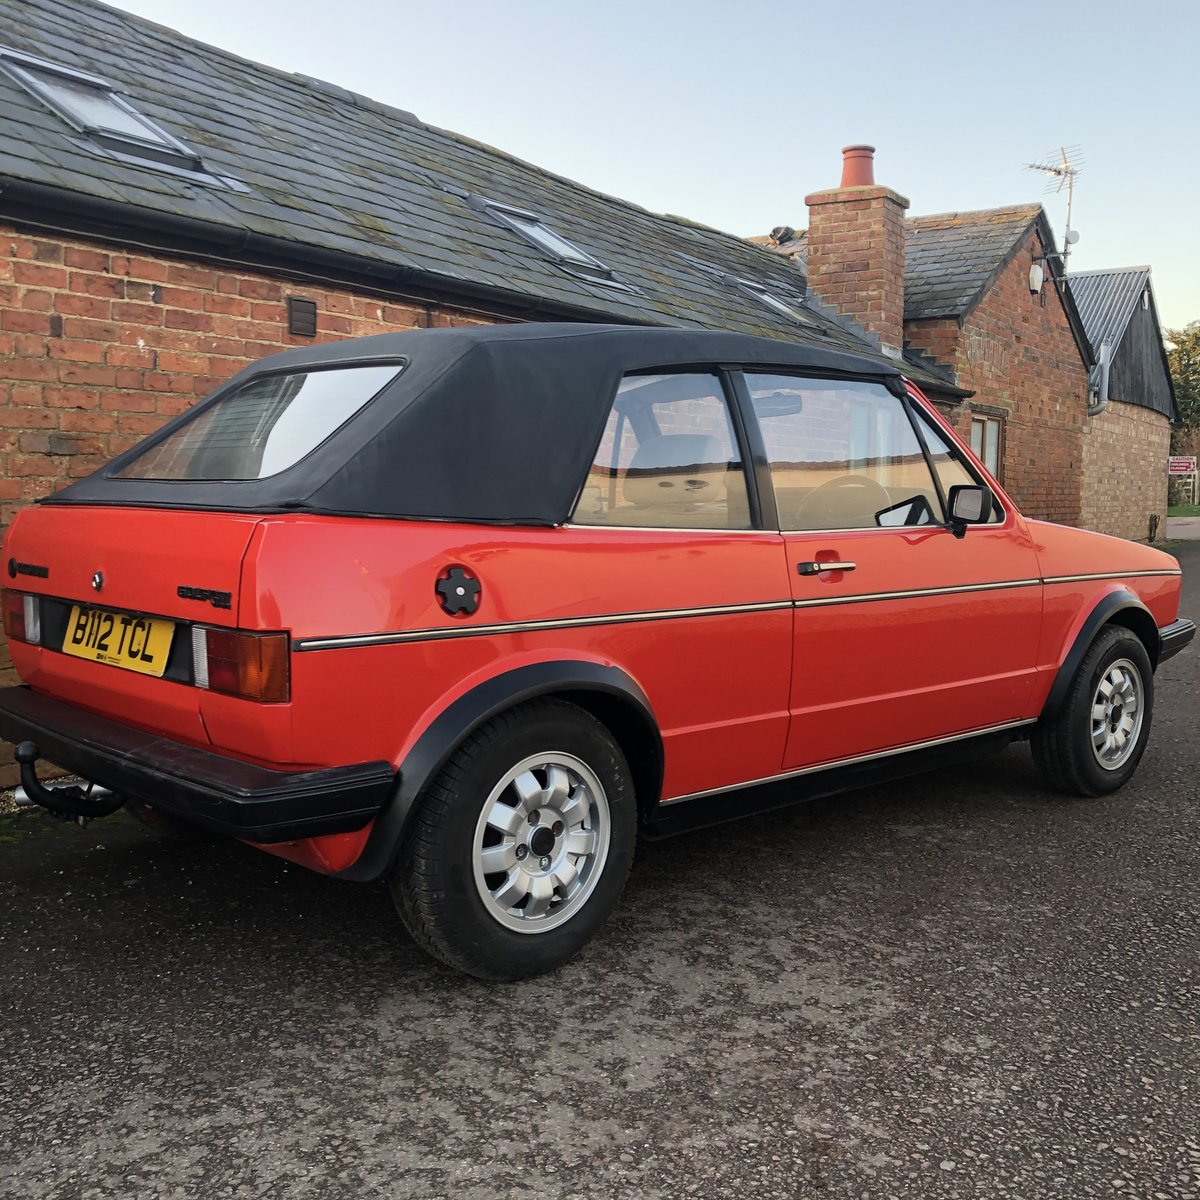 1985 VW Golf MK1 GTi Cabriolet For Sale (picture 2 of 5)